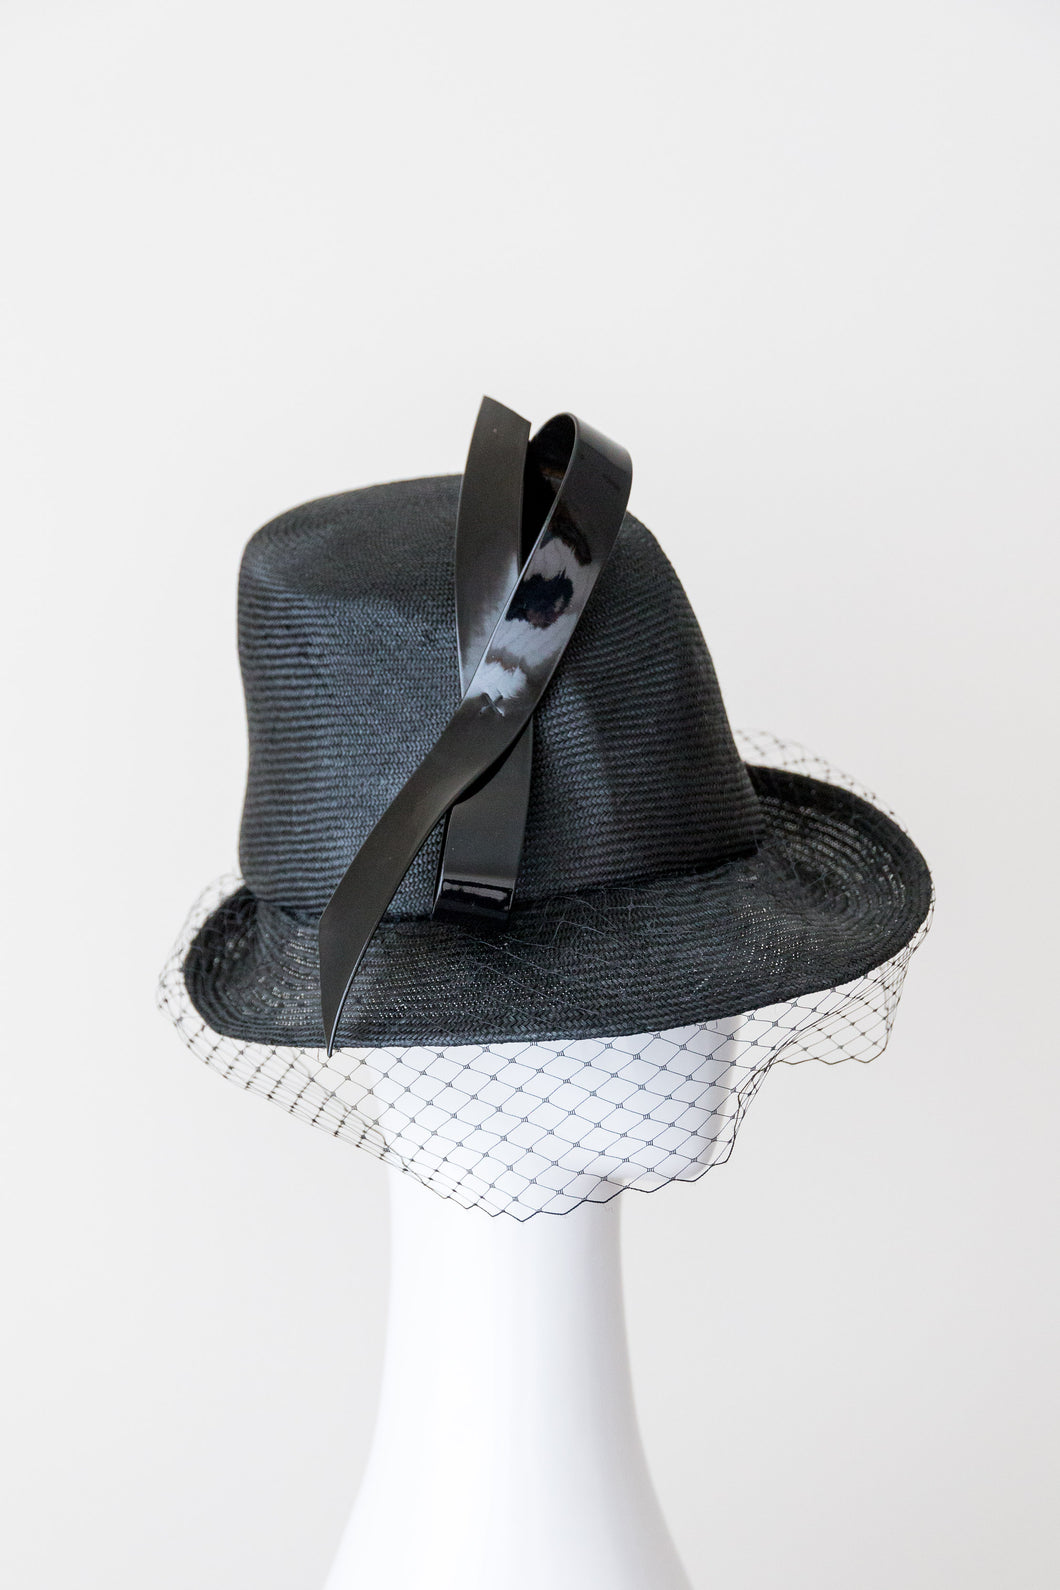 ZARA-Black asymmetrical tall hat with veiling and patent bow